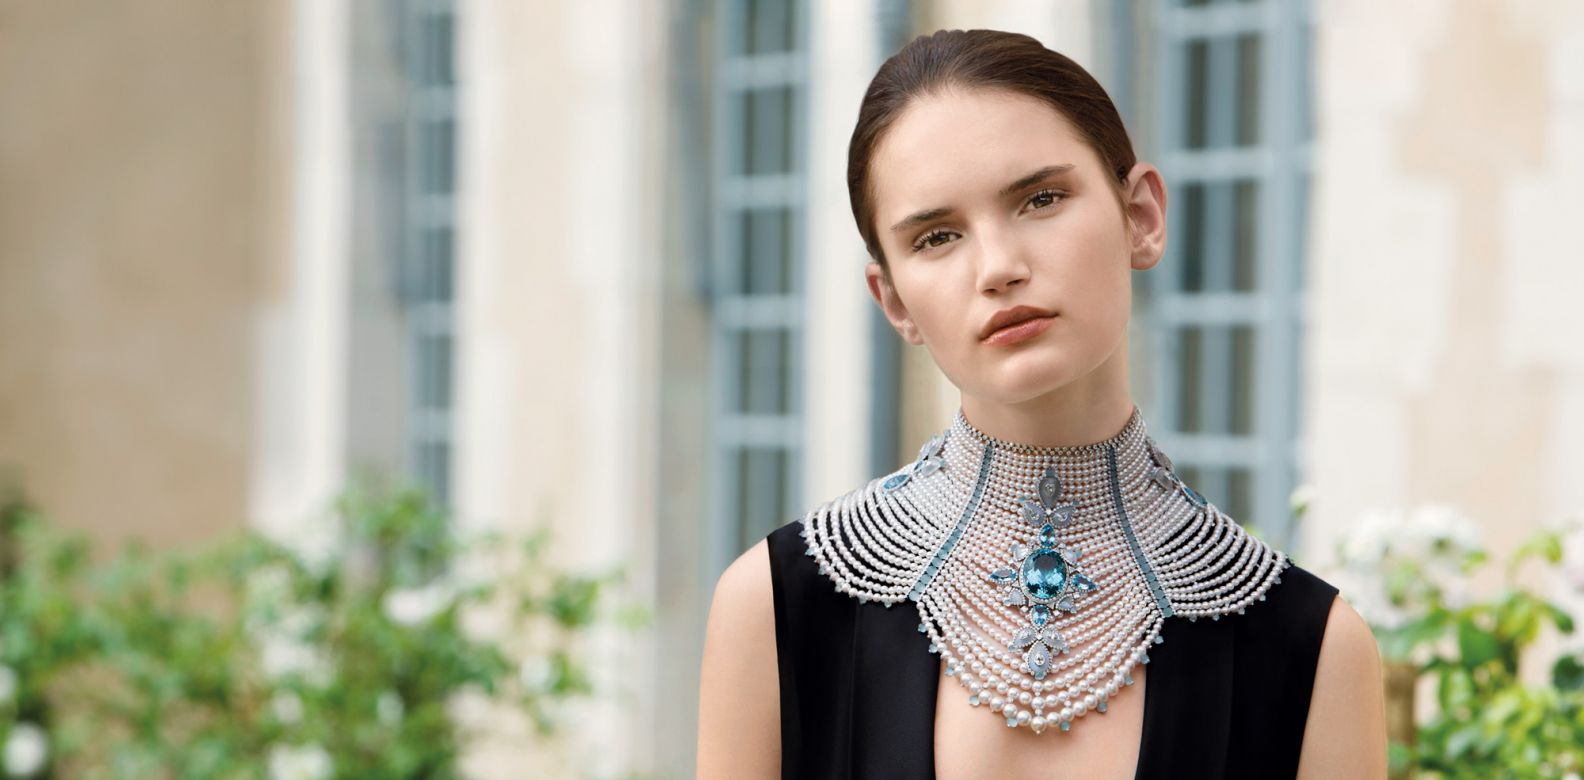 Baïkal necklace in white gold set with pearls, moonstones, aquamarines and diamonds, by Boucheron; jumpsuit by Lanvin